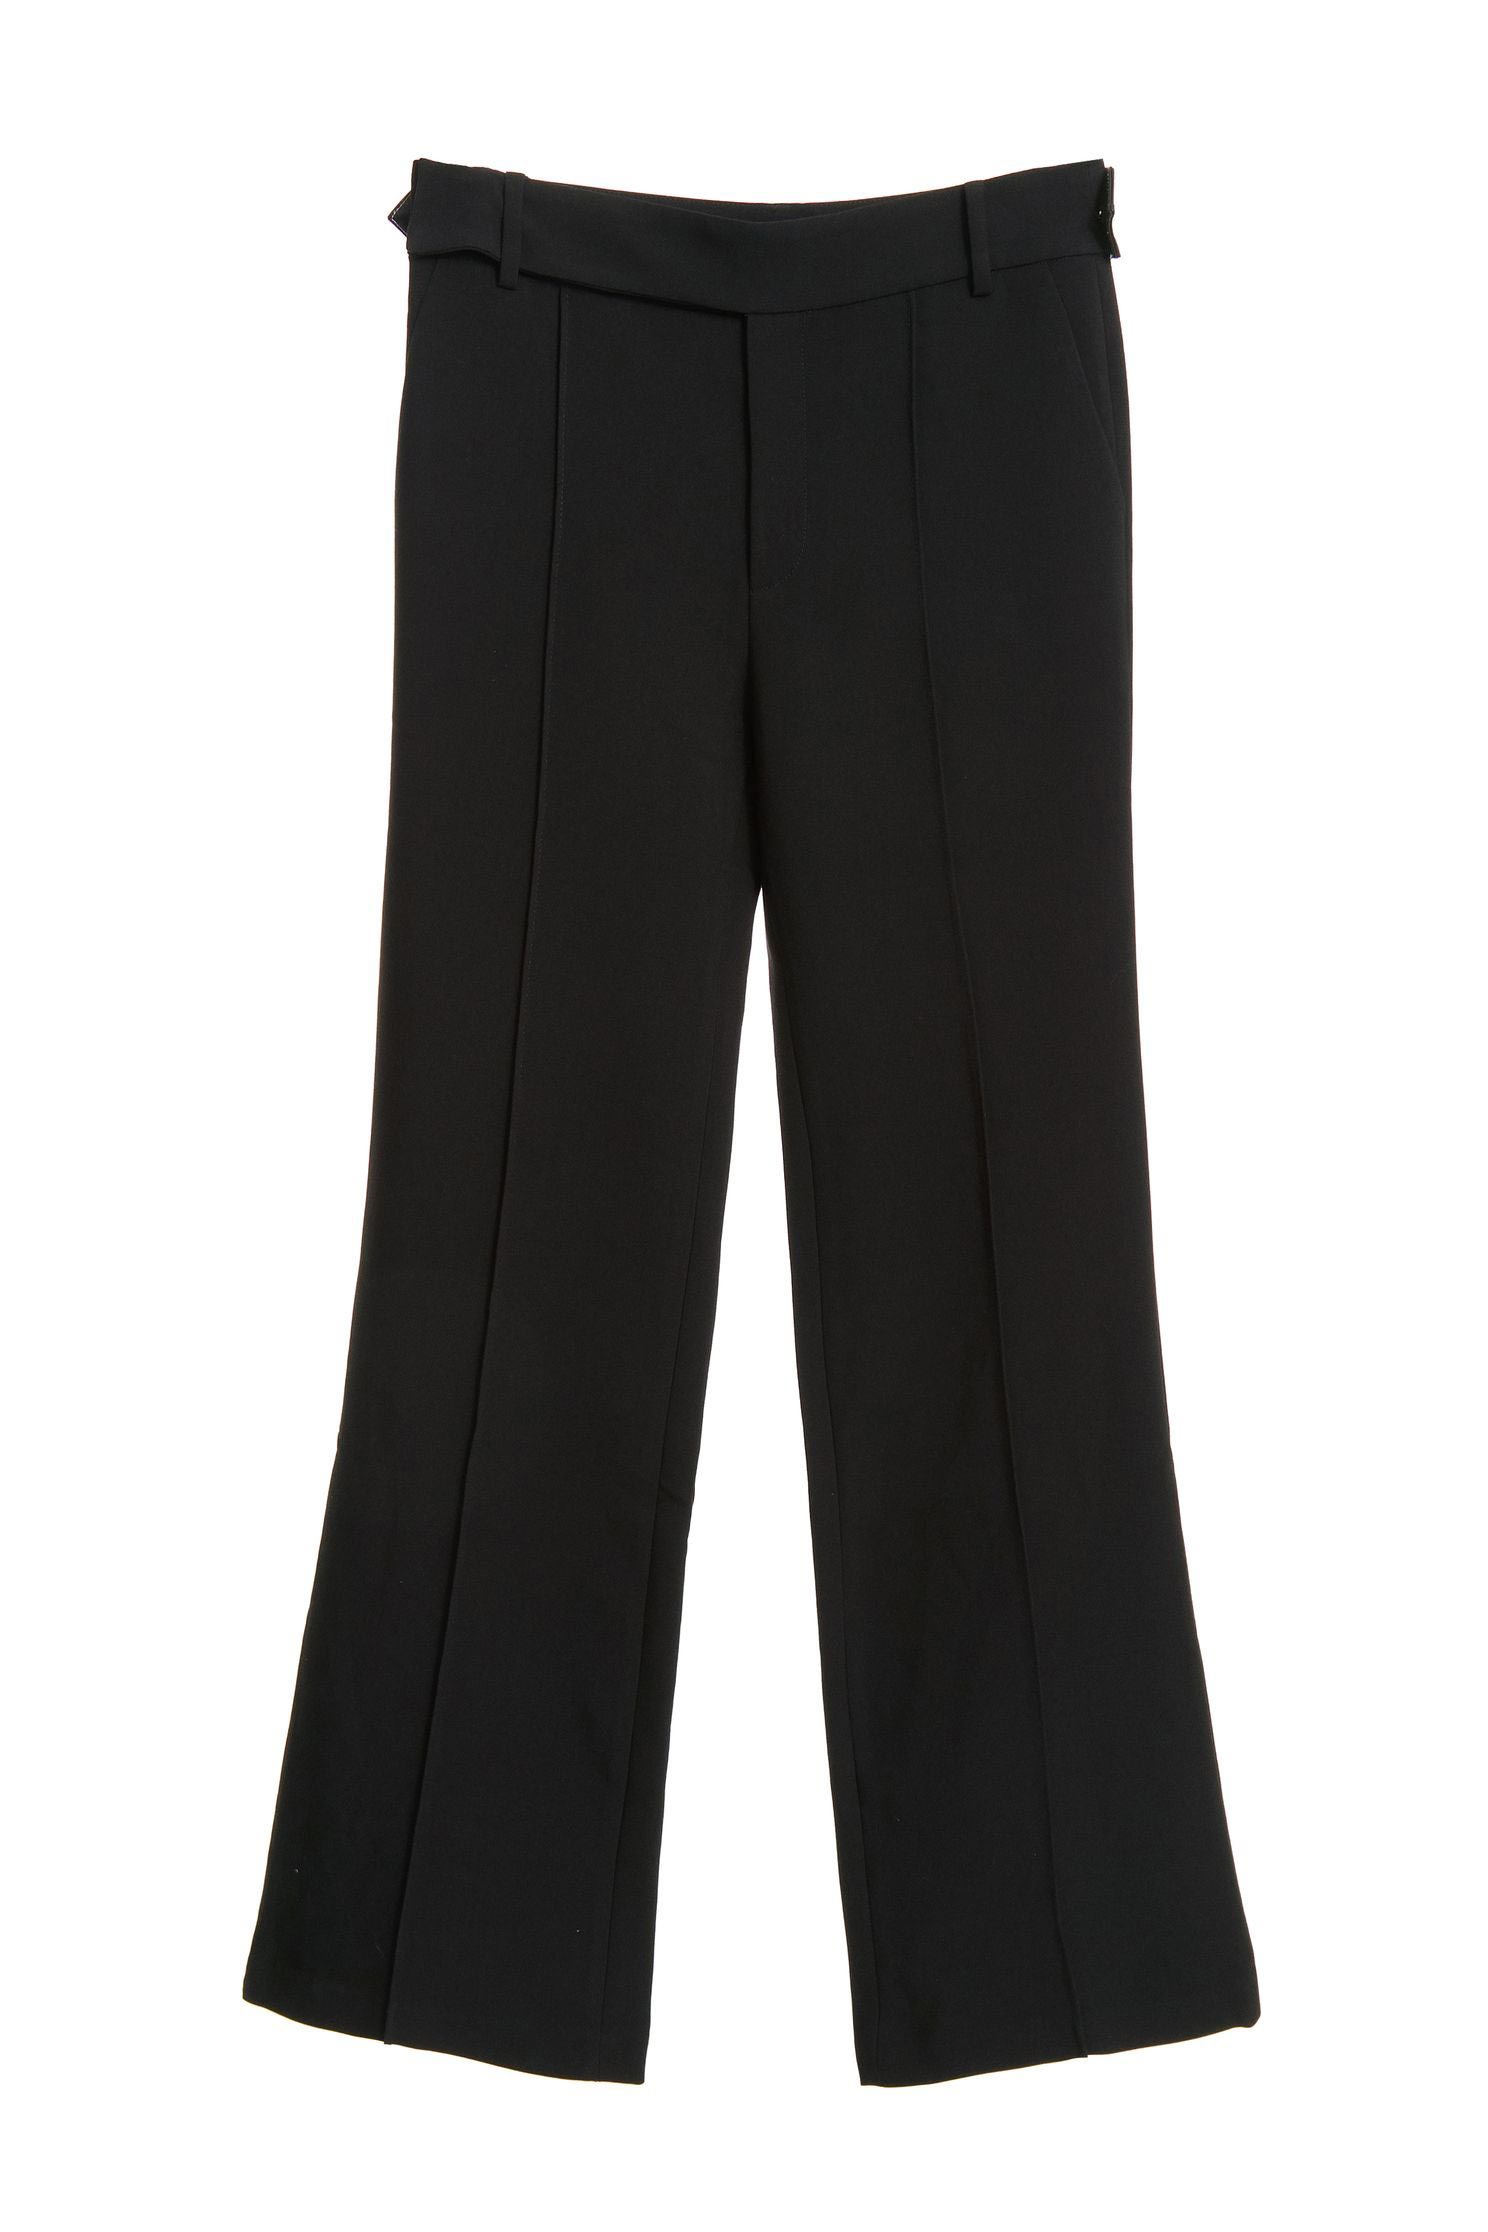 Leather strap trim trousers